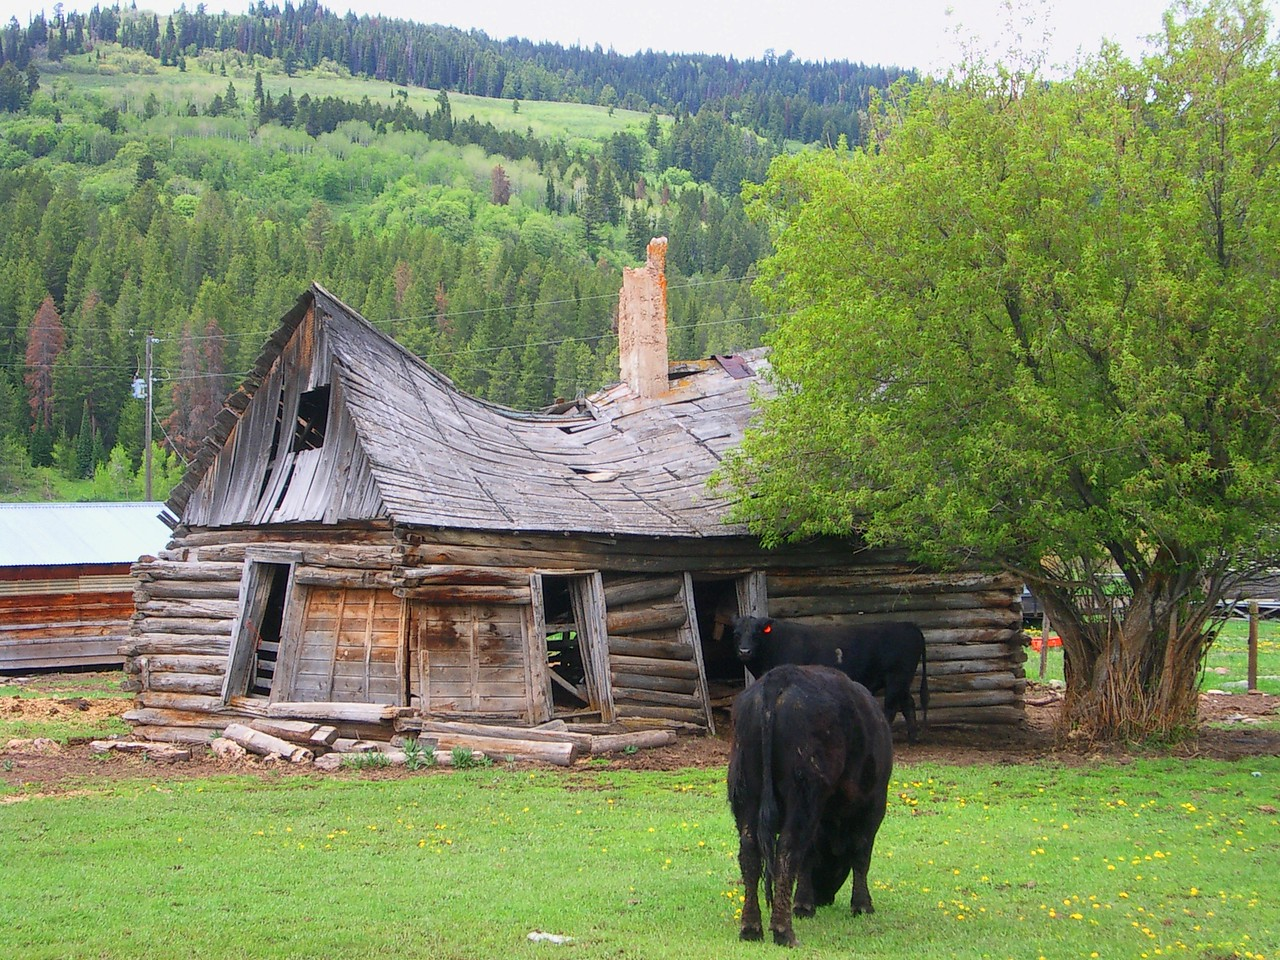 Idaho fixer-upper that the cows seemed to quite like. <br /> <br /> I thought it had a certain charm to it too.